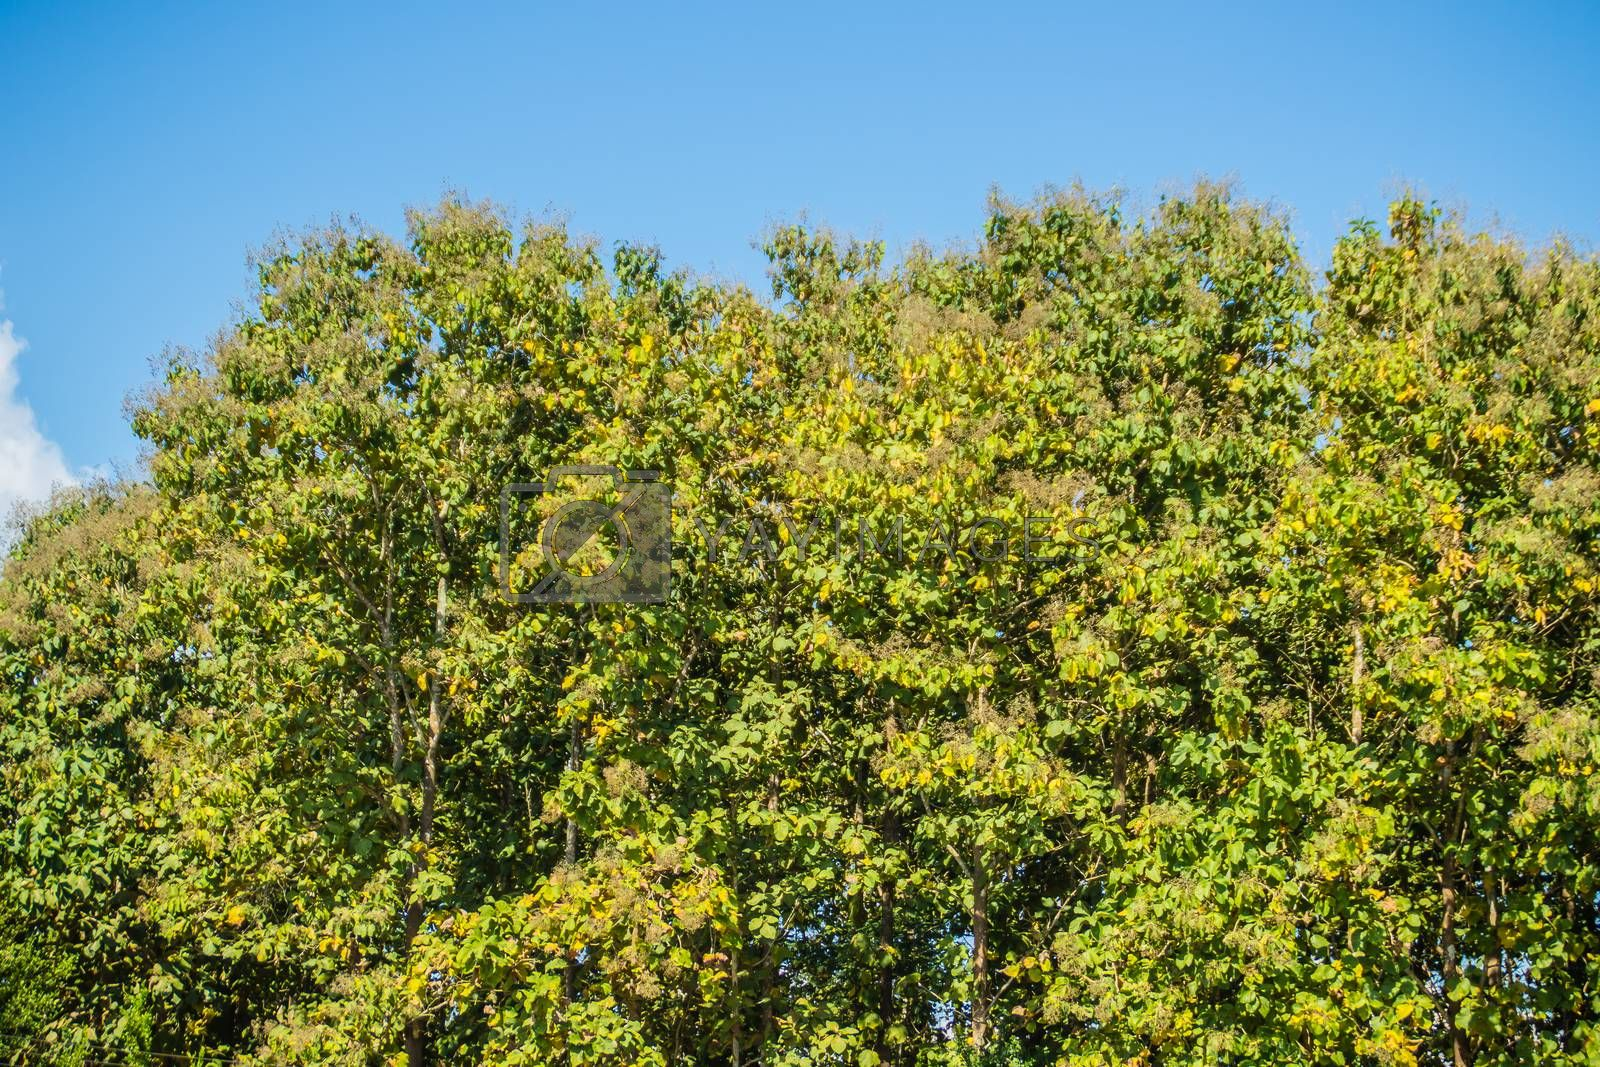 Teak treetop forest with blue sky background for text. Teak (Tectona grandis) is a tropical hardwood tree that occurs in mixed hardwood forests. It has small, fragrant white flowers and large leaves.